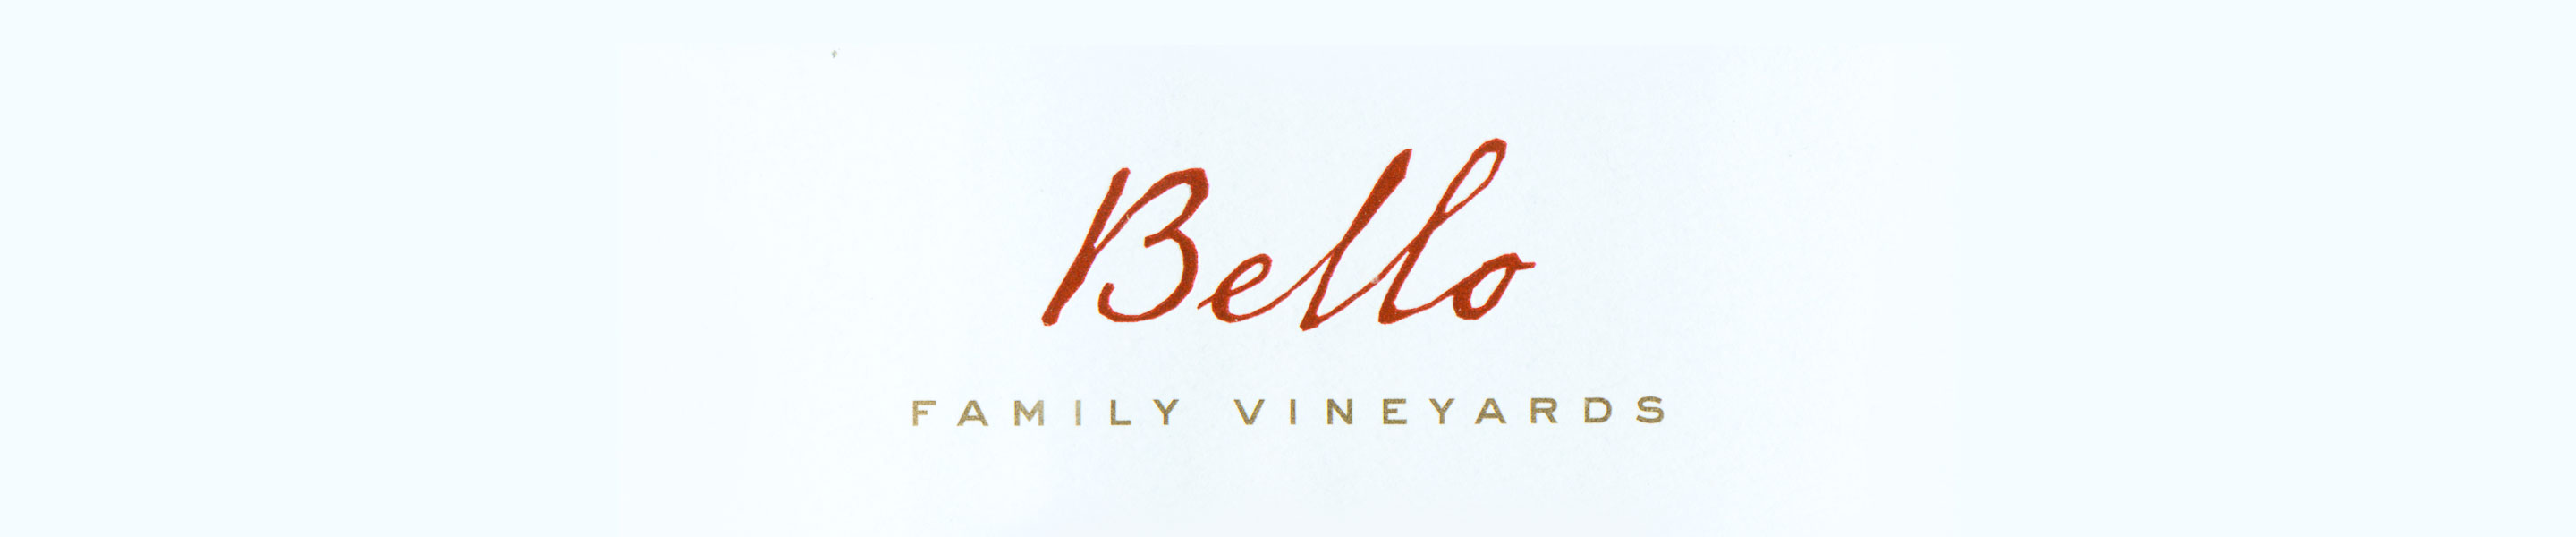 Bello Family Vineyards is a small, family-owned winery in Napa Valley producing extraordinary wines from our estate vineyard in Rutherford. The production team is lead by Michael Bello, who is flanked by son Christopher Bello and winemaker Ross Wallace. The three of them combined make for a powerful force in the industry, and the wines they produce reflect their passion and commitment to quality.